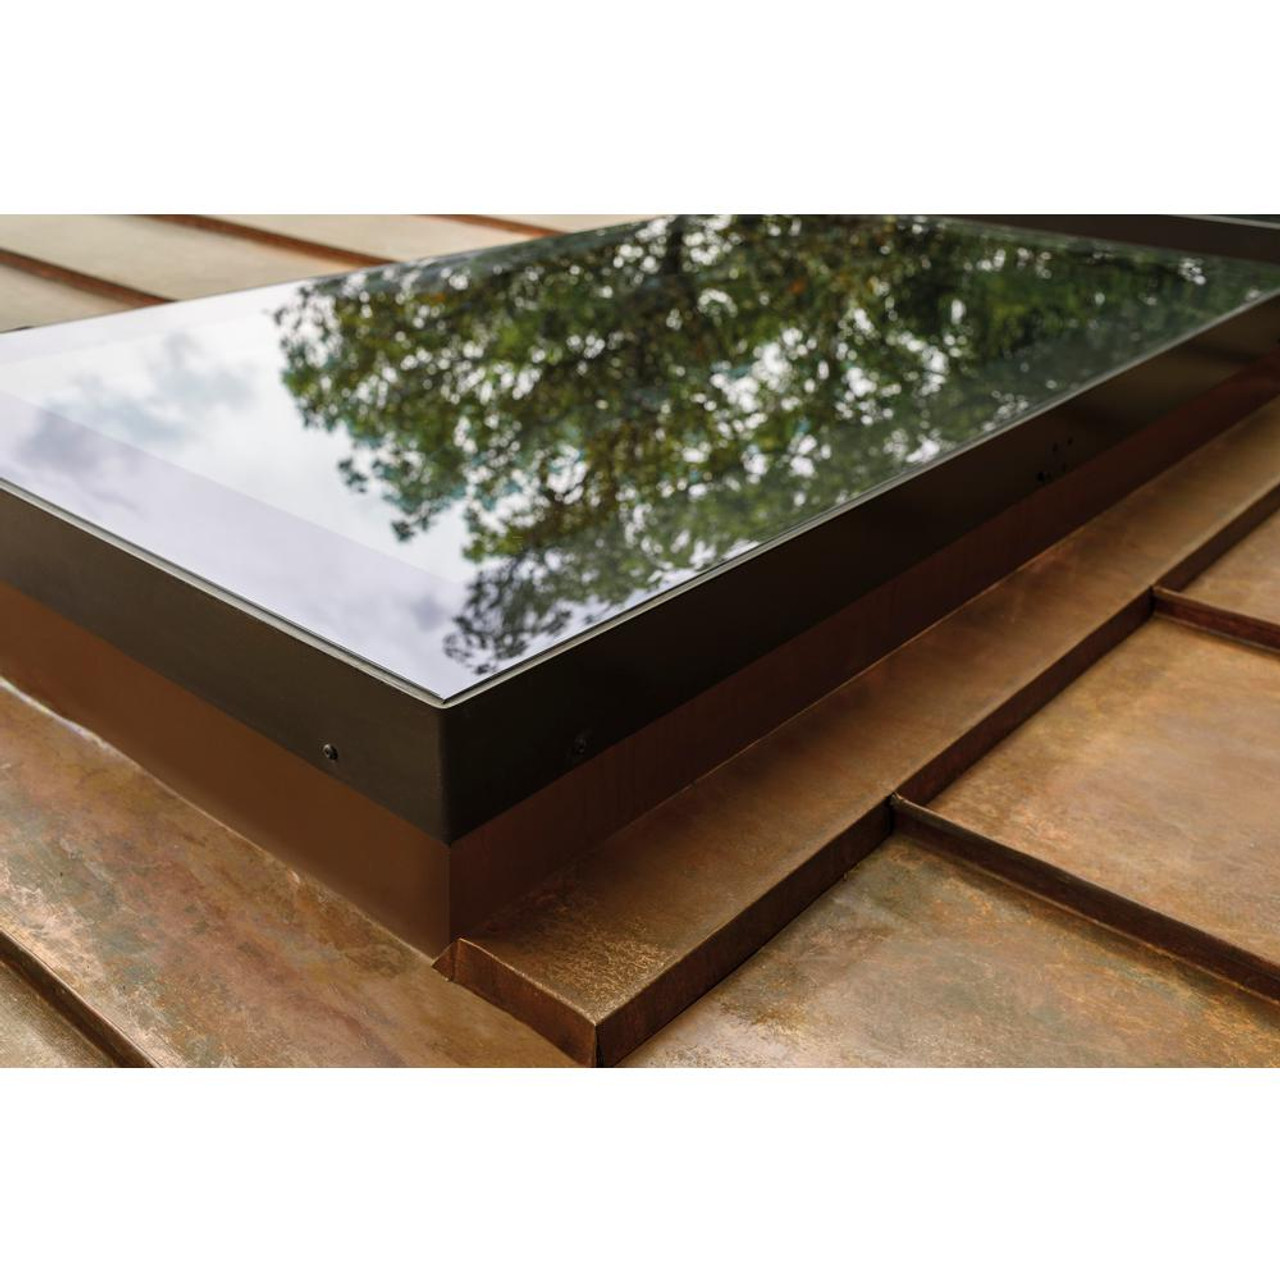 Fakro Fxc 30 12 In X 30 12 In Fixed Curb Mounted Skylight With Laminated Lowe366 Glass